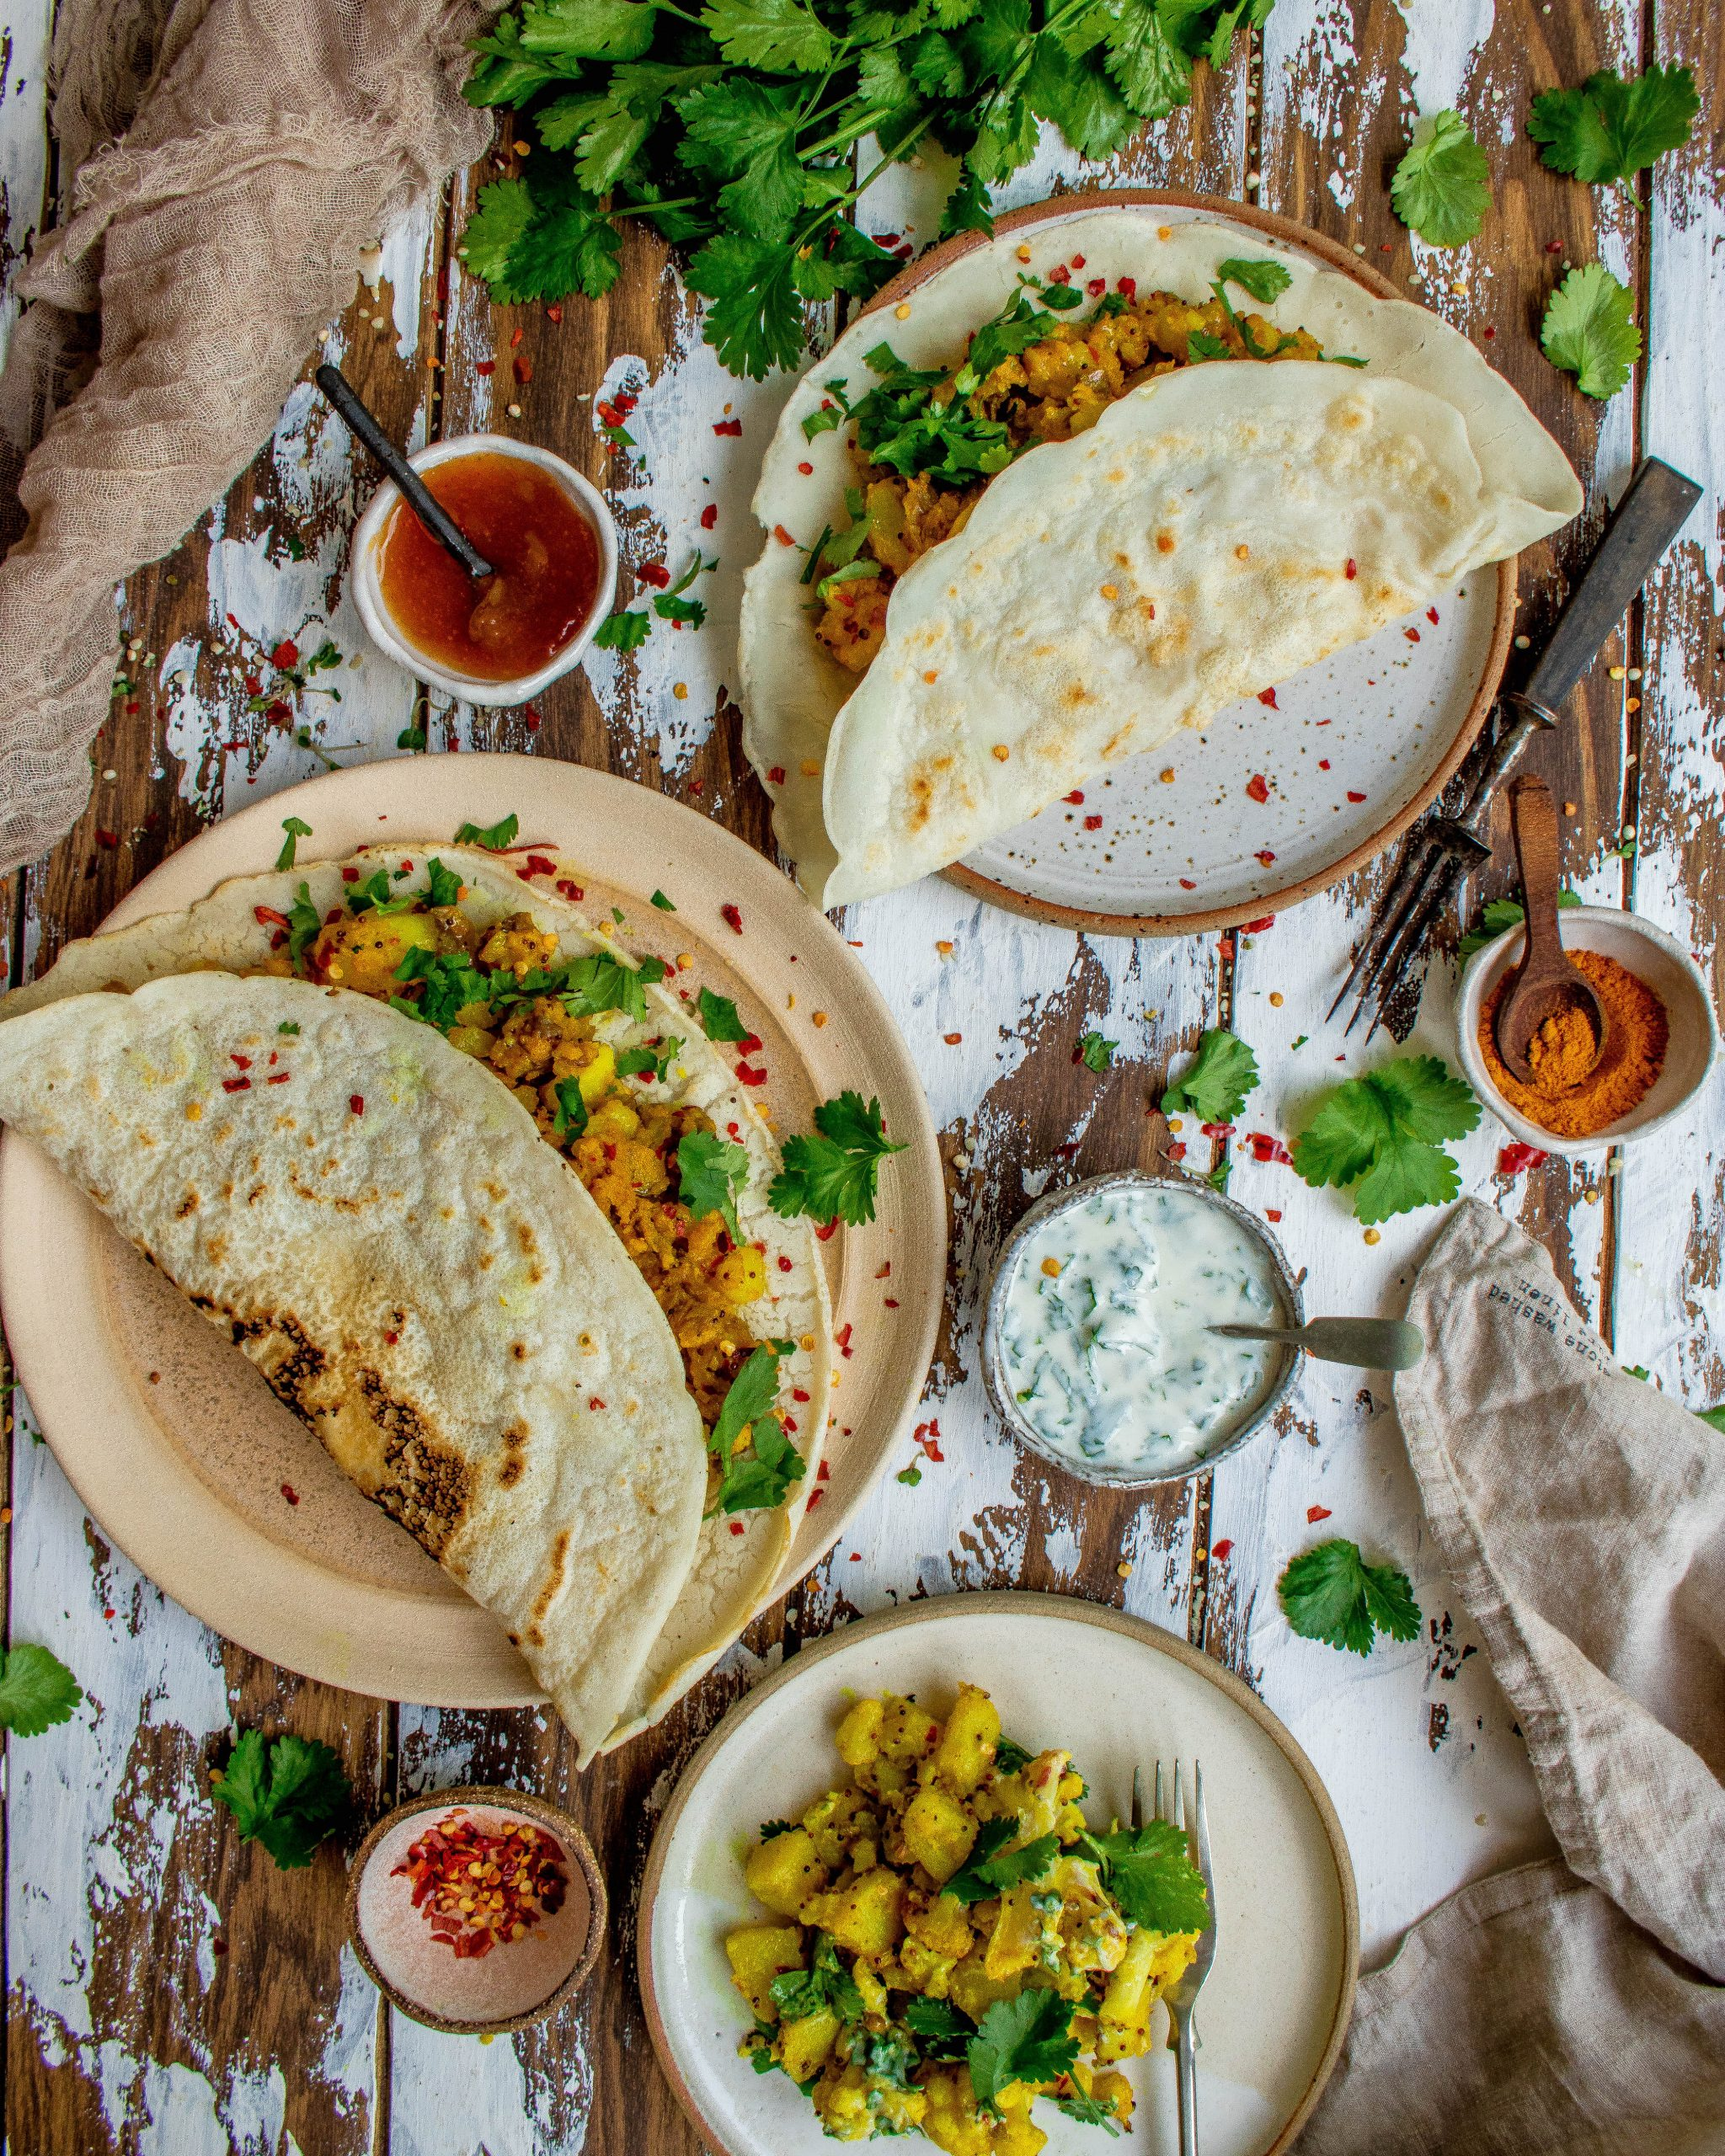 Dosa Wraps with Spiced Potatoes